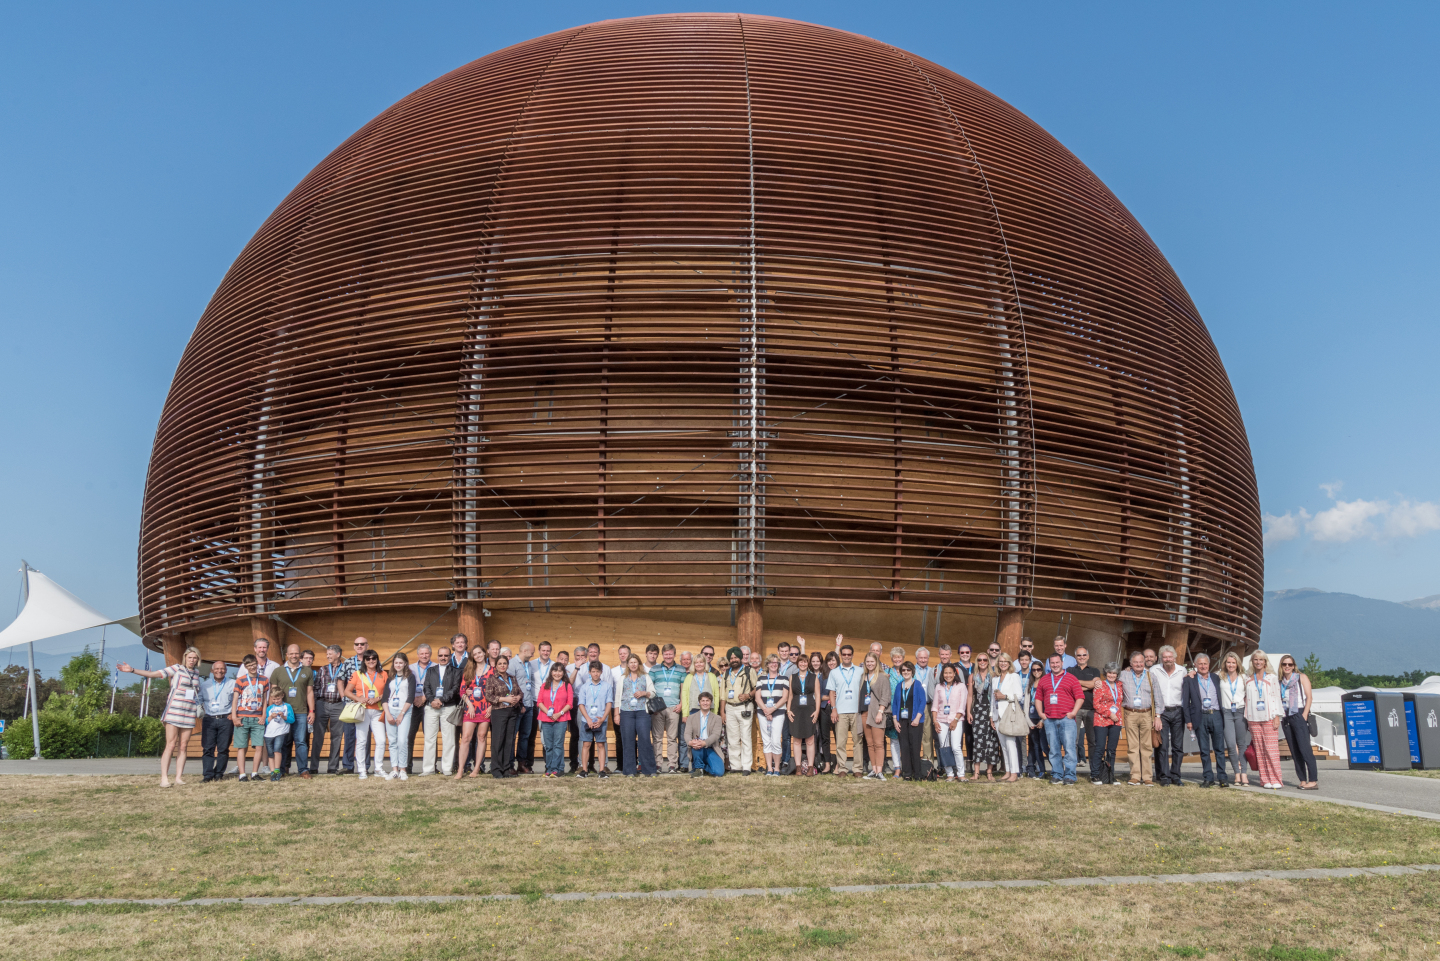 VIP visit,Personalities and History of CERN